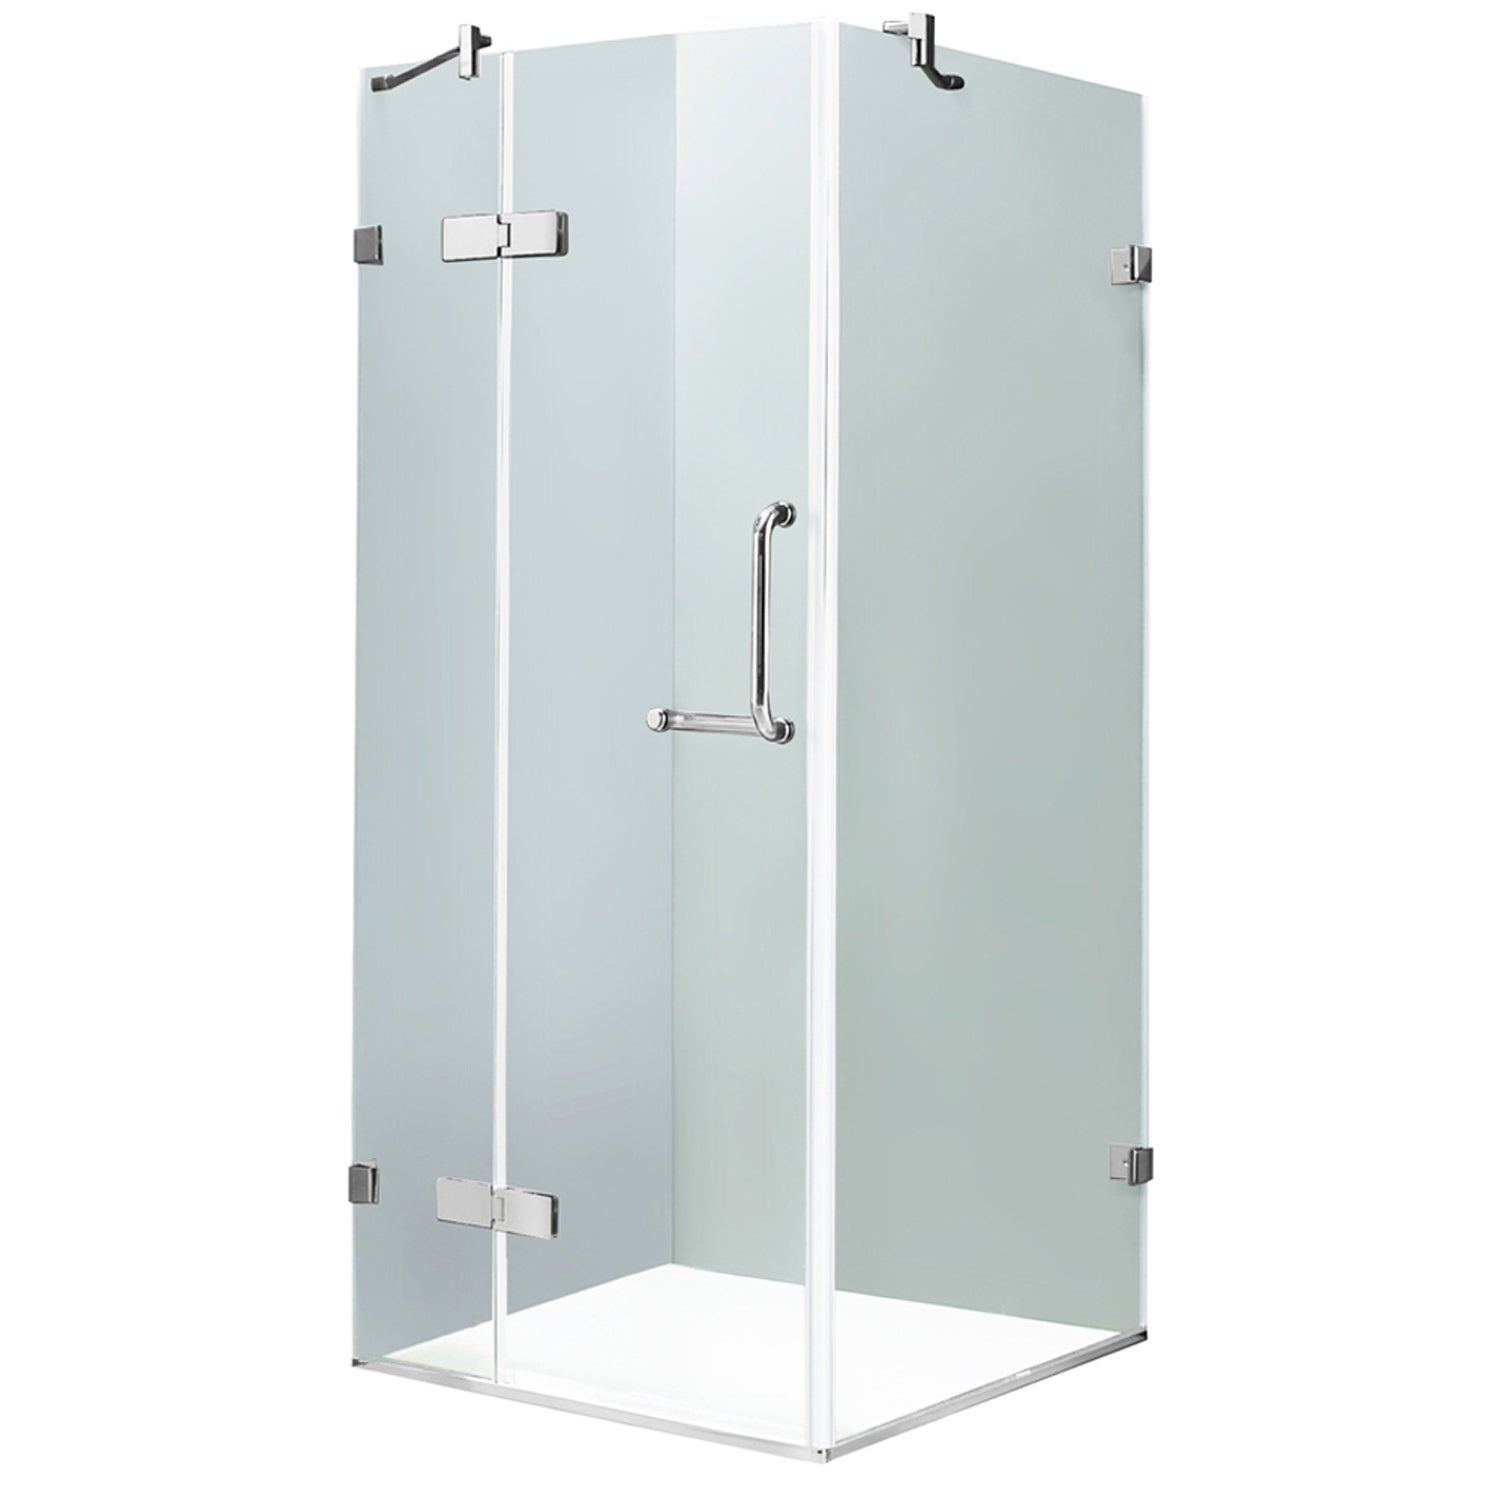 clear caspian inch of shower customer vigo glass size pivot door sliding full installation hardware service barn best doors frameless